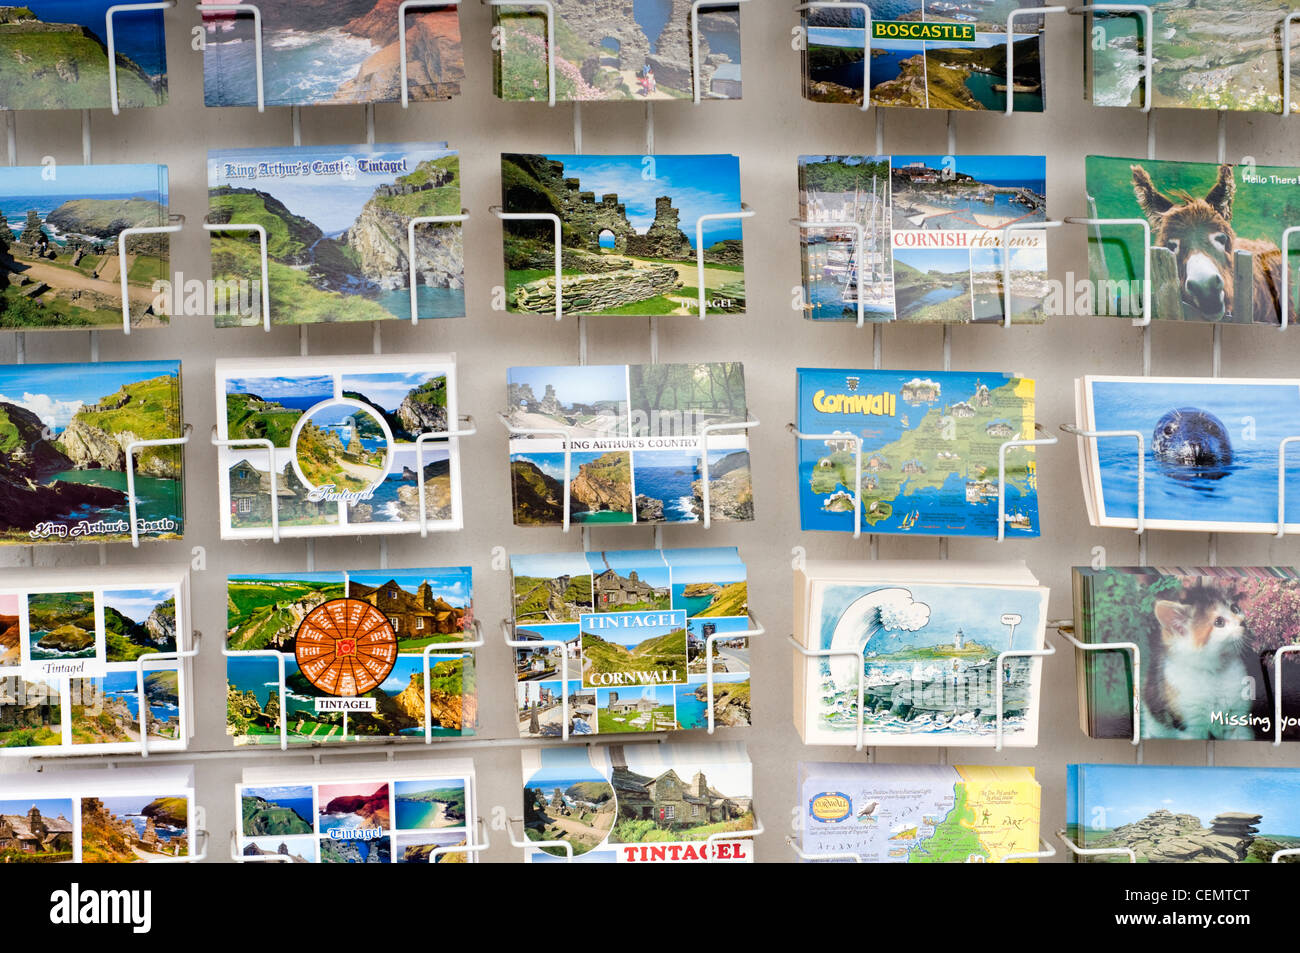 Postcards for sale outside a shop in Tintagel, Cornwall, England, UK - Stock Image